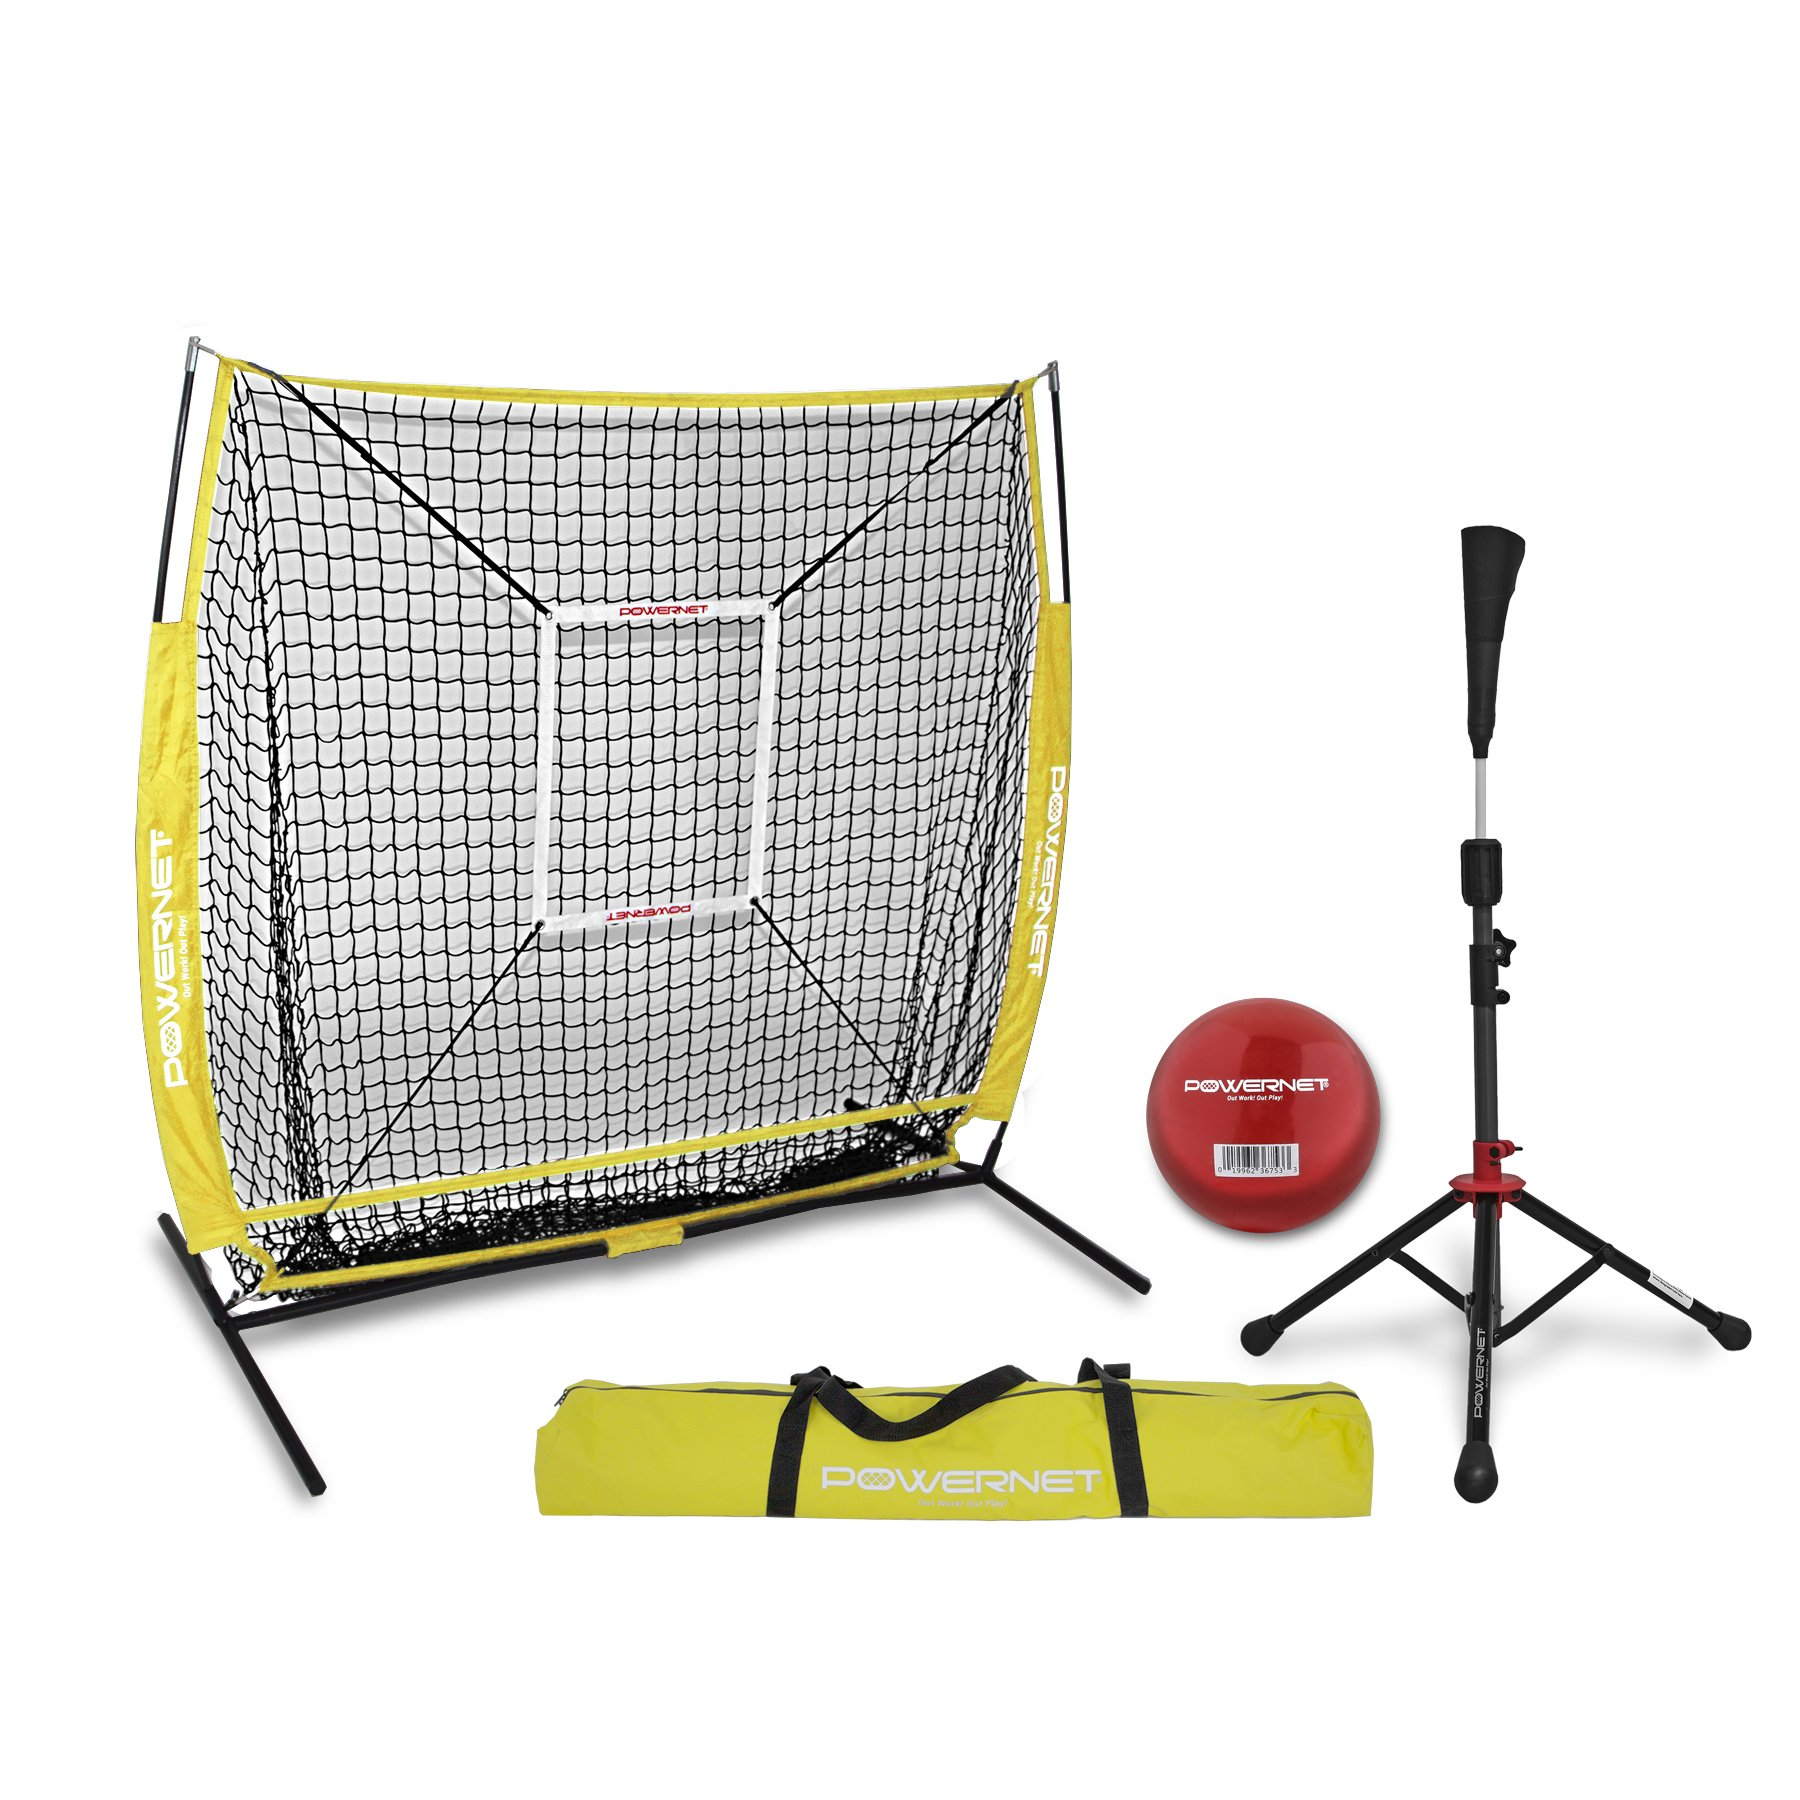 PowerNet 5x5 Practice Net + Deluxe Tee + Strike Zone + Weighted Training Ball Bundle (Yellow) | Baseball Softball Pitching Batting Coaching Pack | Work on Pitch Accuracy | Build Plate Confidence